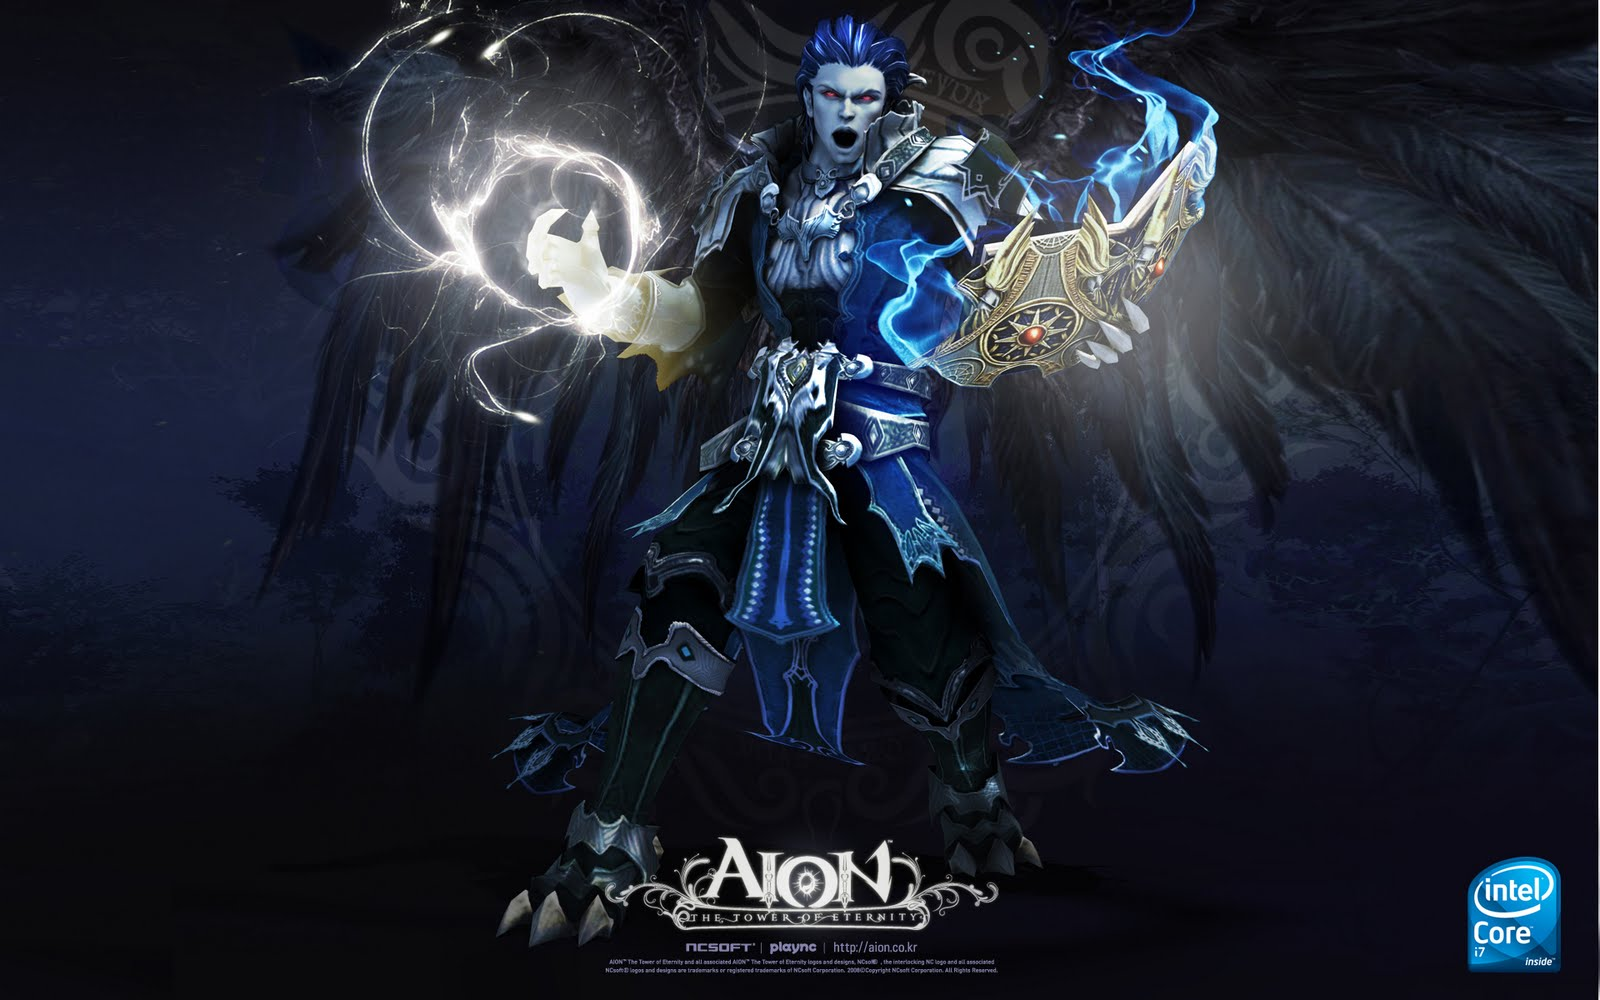 http://4.bp.blogspot.com/-NckrL2YTXLI/TaJWwxTCzhI/AAAAAAAABQg/3BlAew9T3dg/s1600/AION-Wallpaper-Screenshot-PC-Game-Online-10.jpg